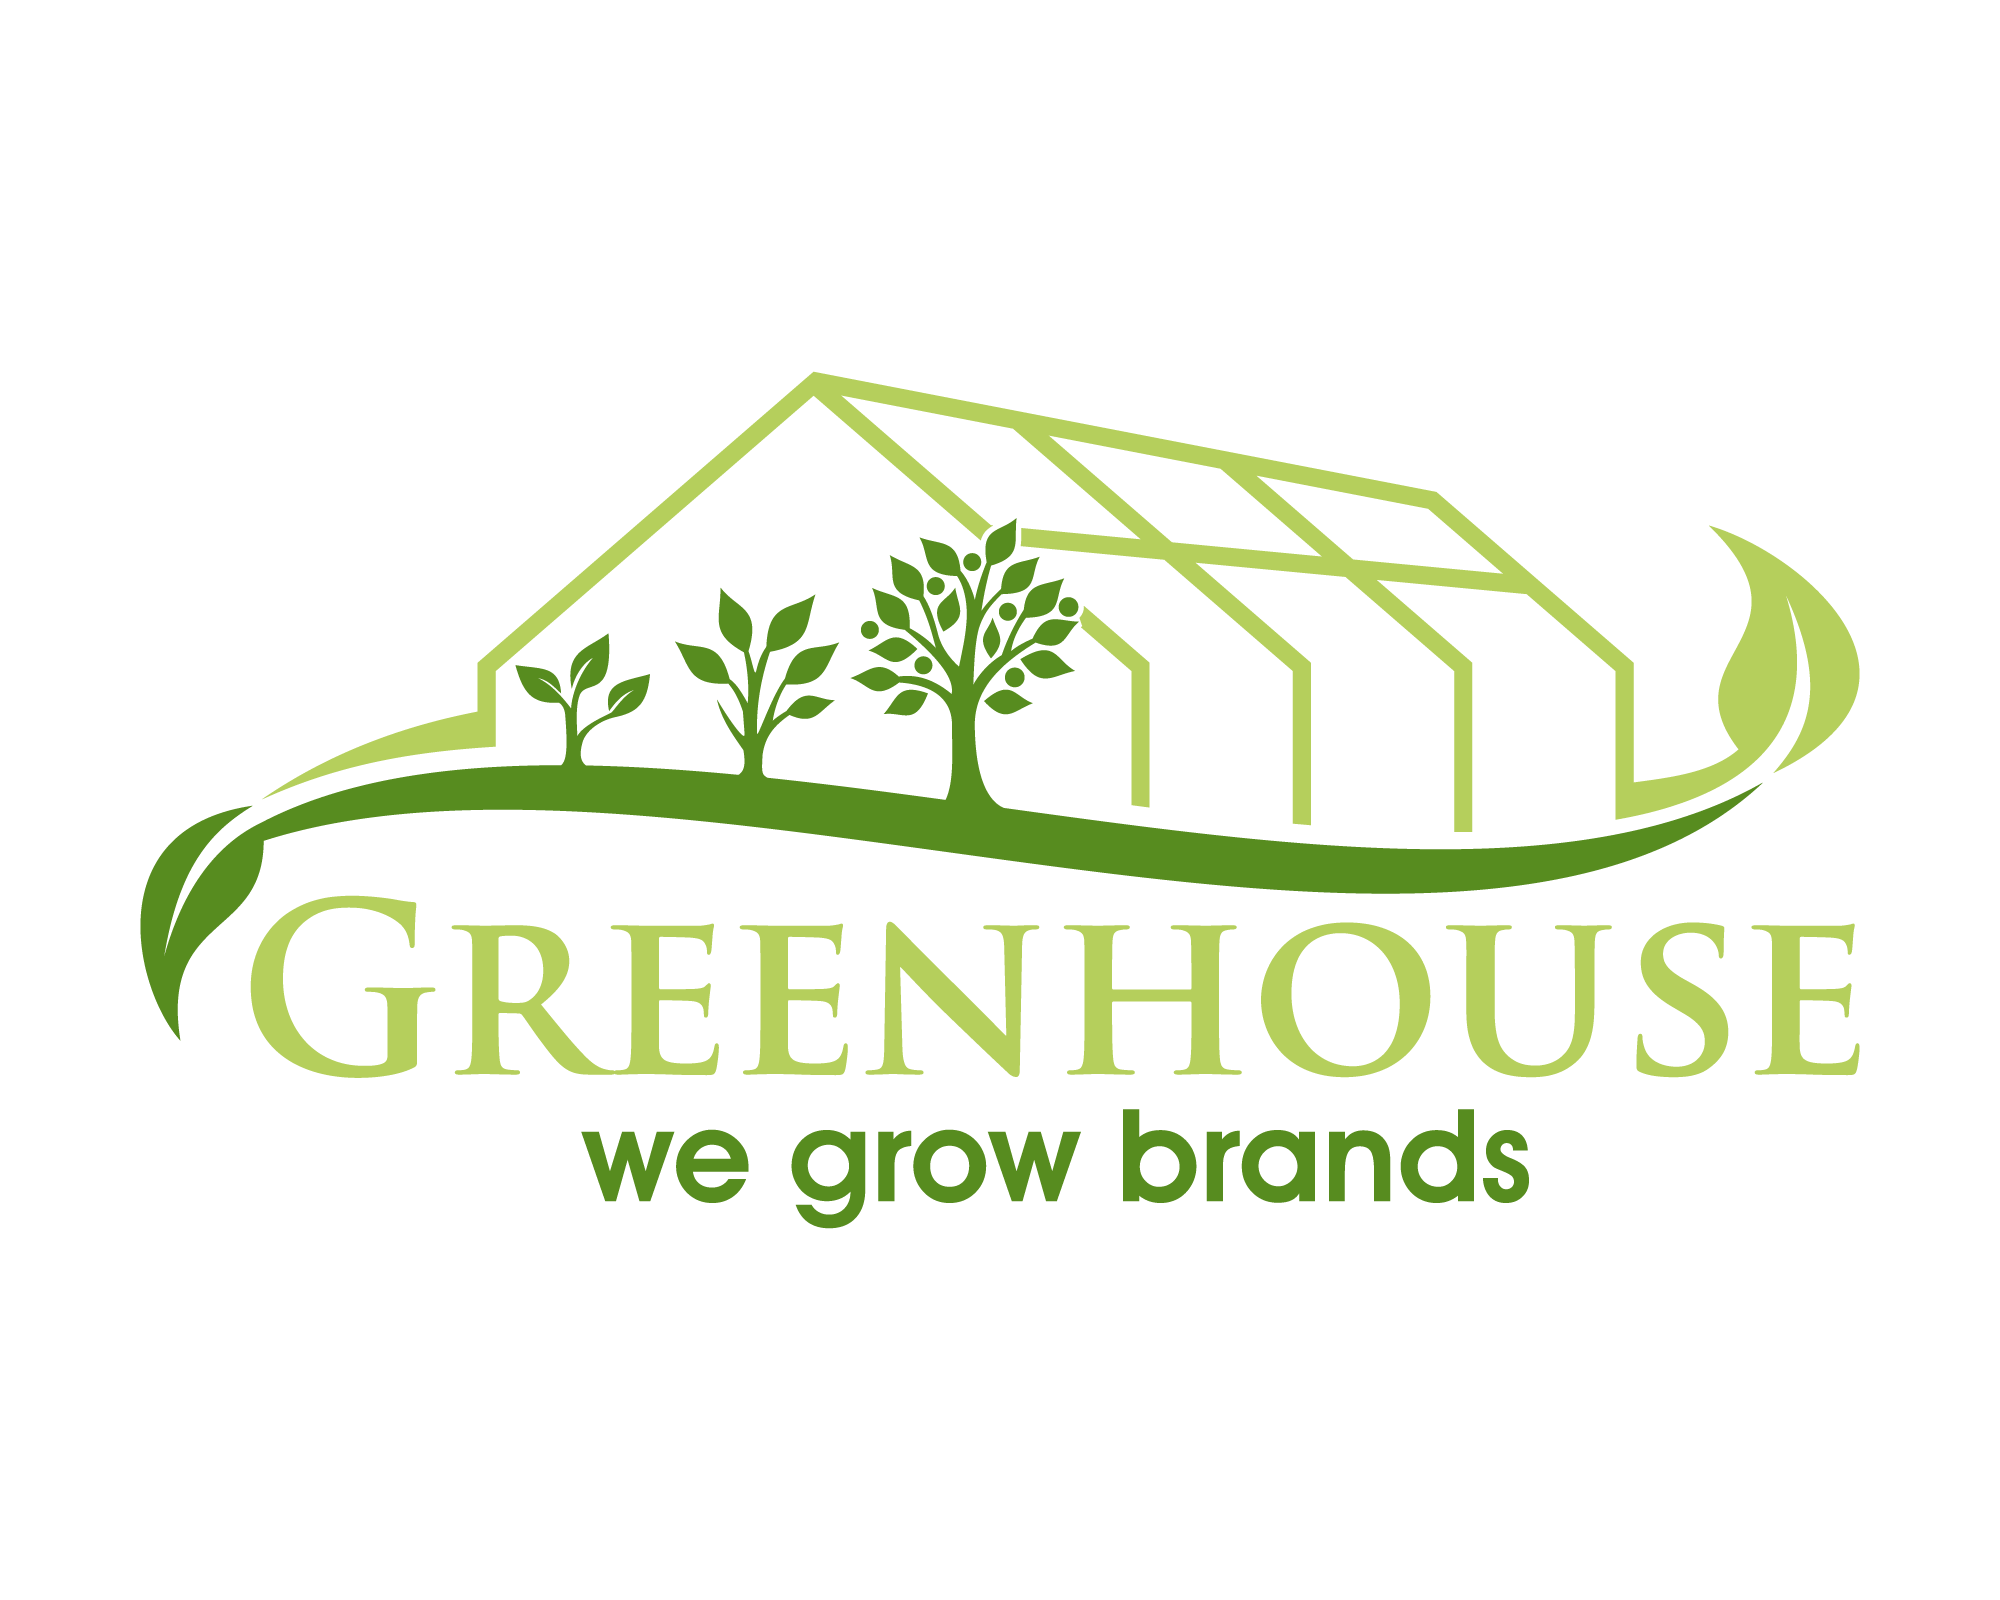 Apply For Beverage Jobs & Learn About Greenhouse Agency